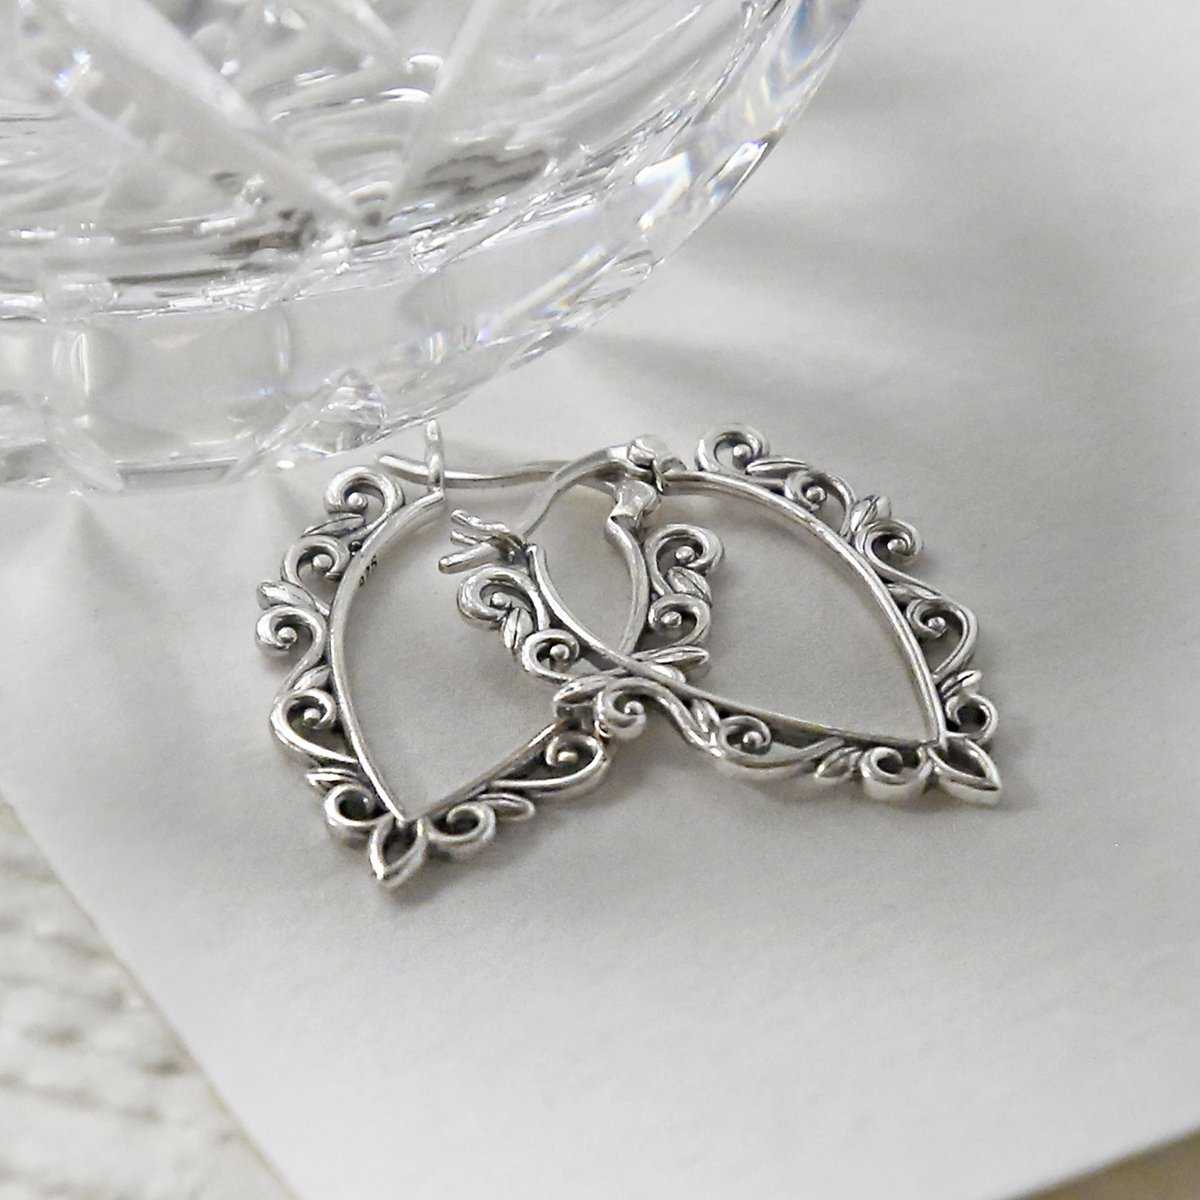 Sterling Silver Harmony Hoops interlocked on white background with vase